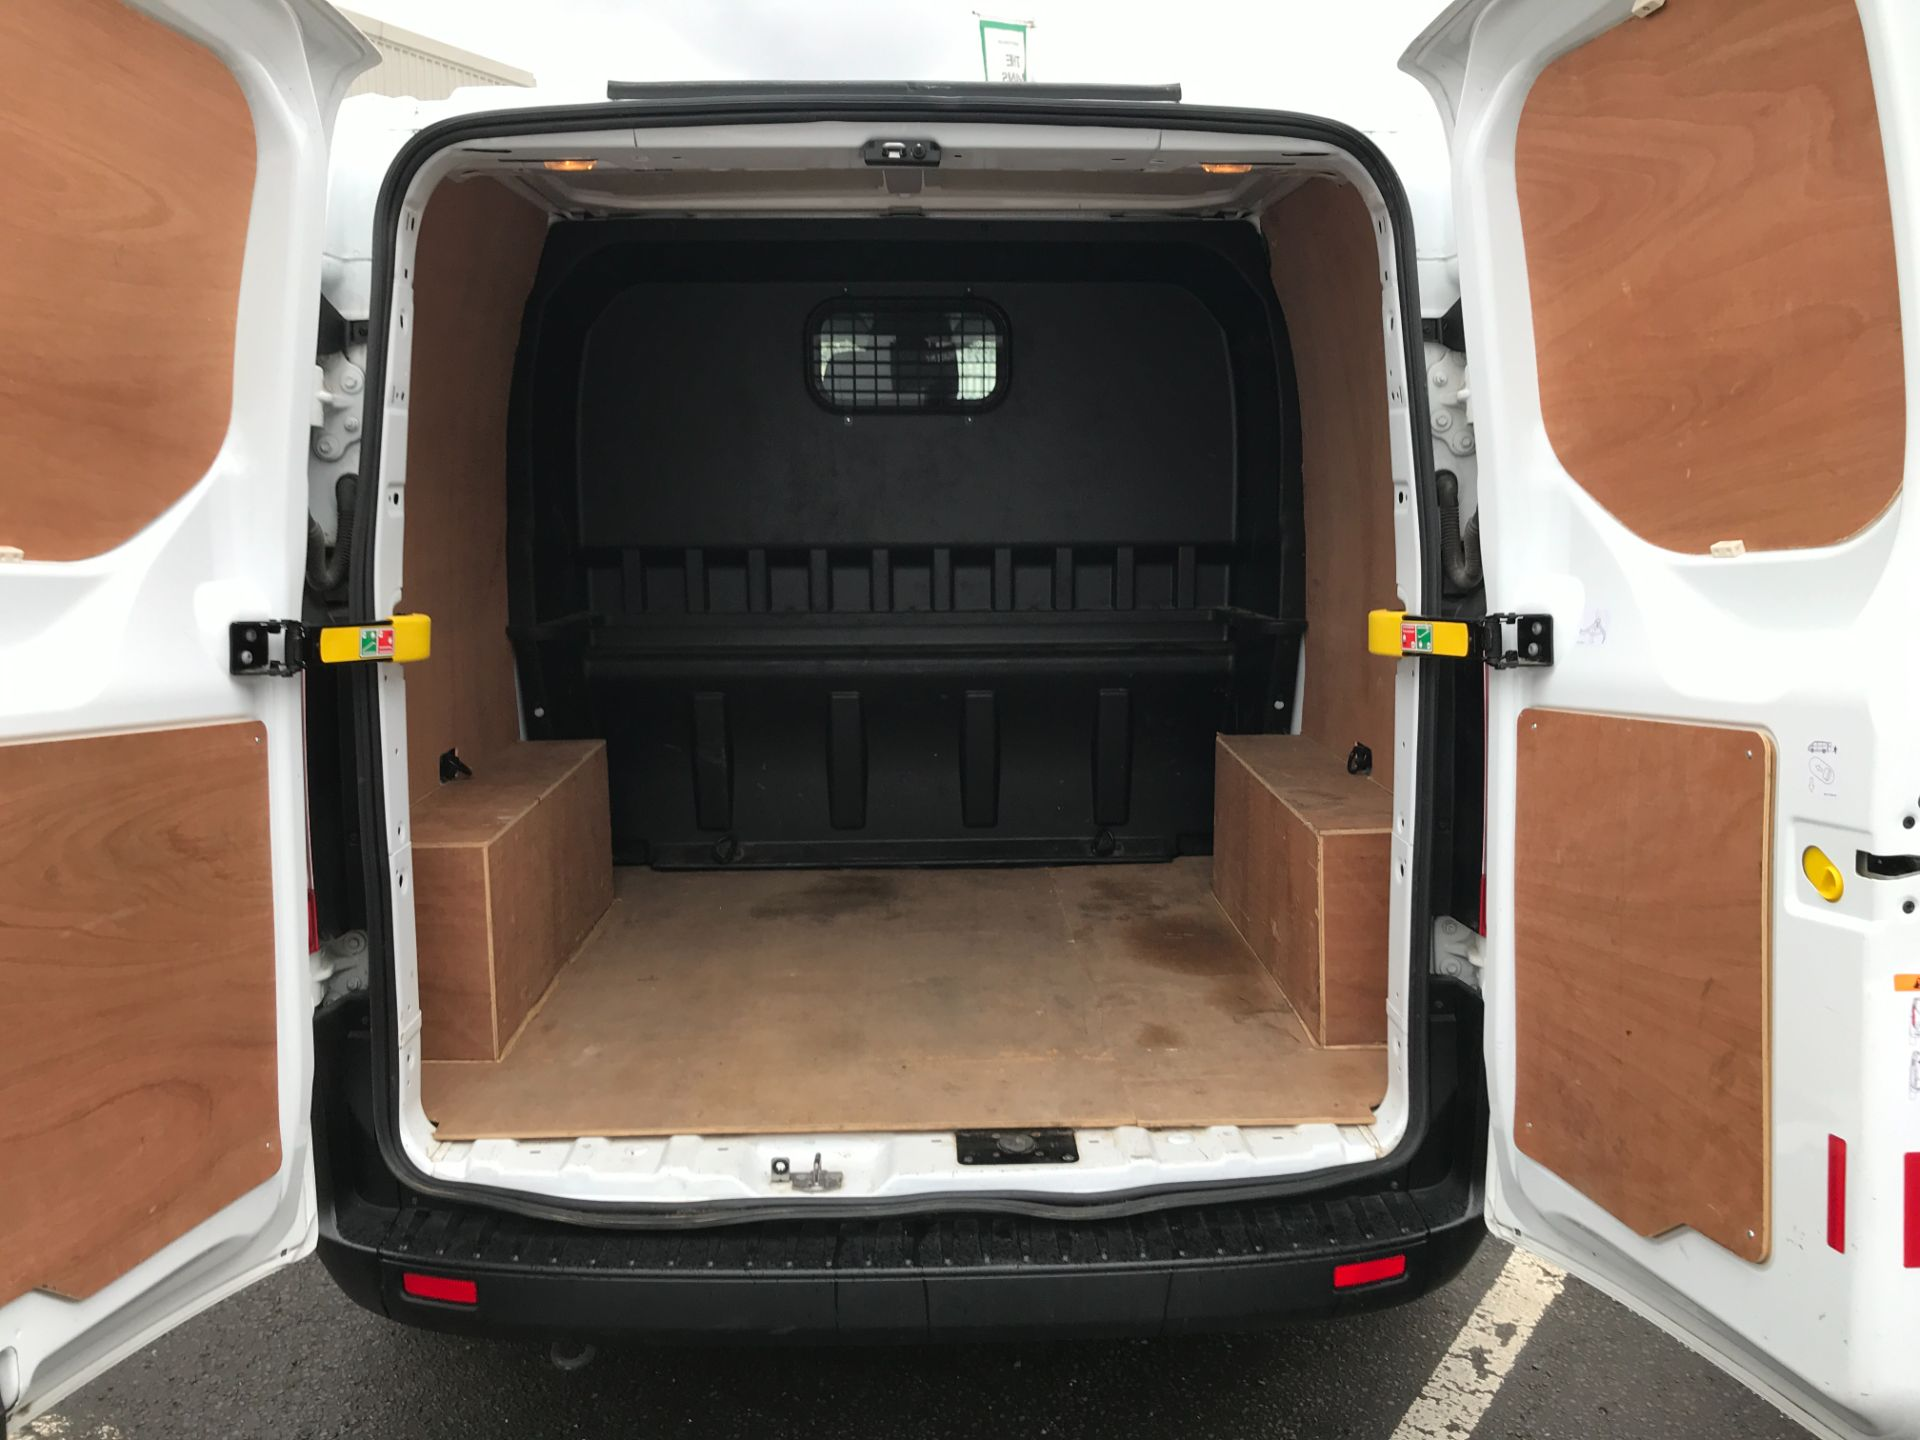 2018 Ford Transit Custom 300 L1 2.0TDCI 105PS LOW ROOF EURO 6 DOUBLE CAB (FD18WRE) Image 10